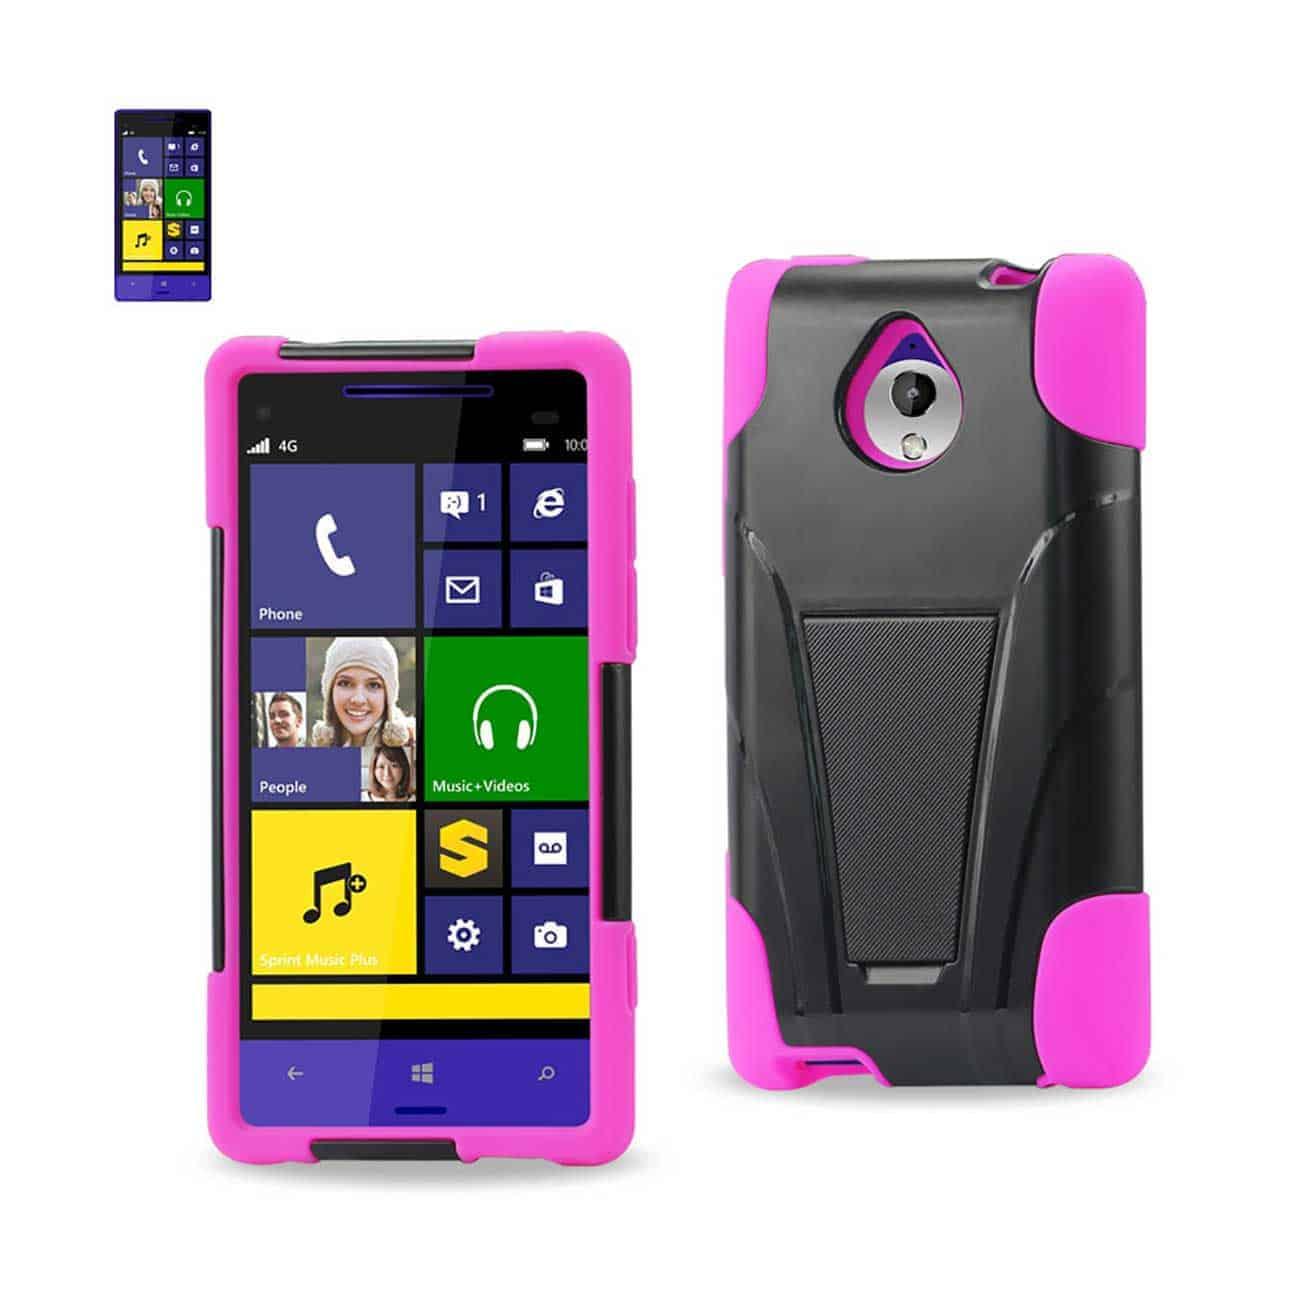 HTC 8XT HYBRID HEAVY DUTY CASE WITH KICKSTAND IN HOT PINK BLACK